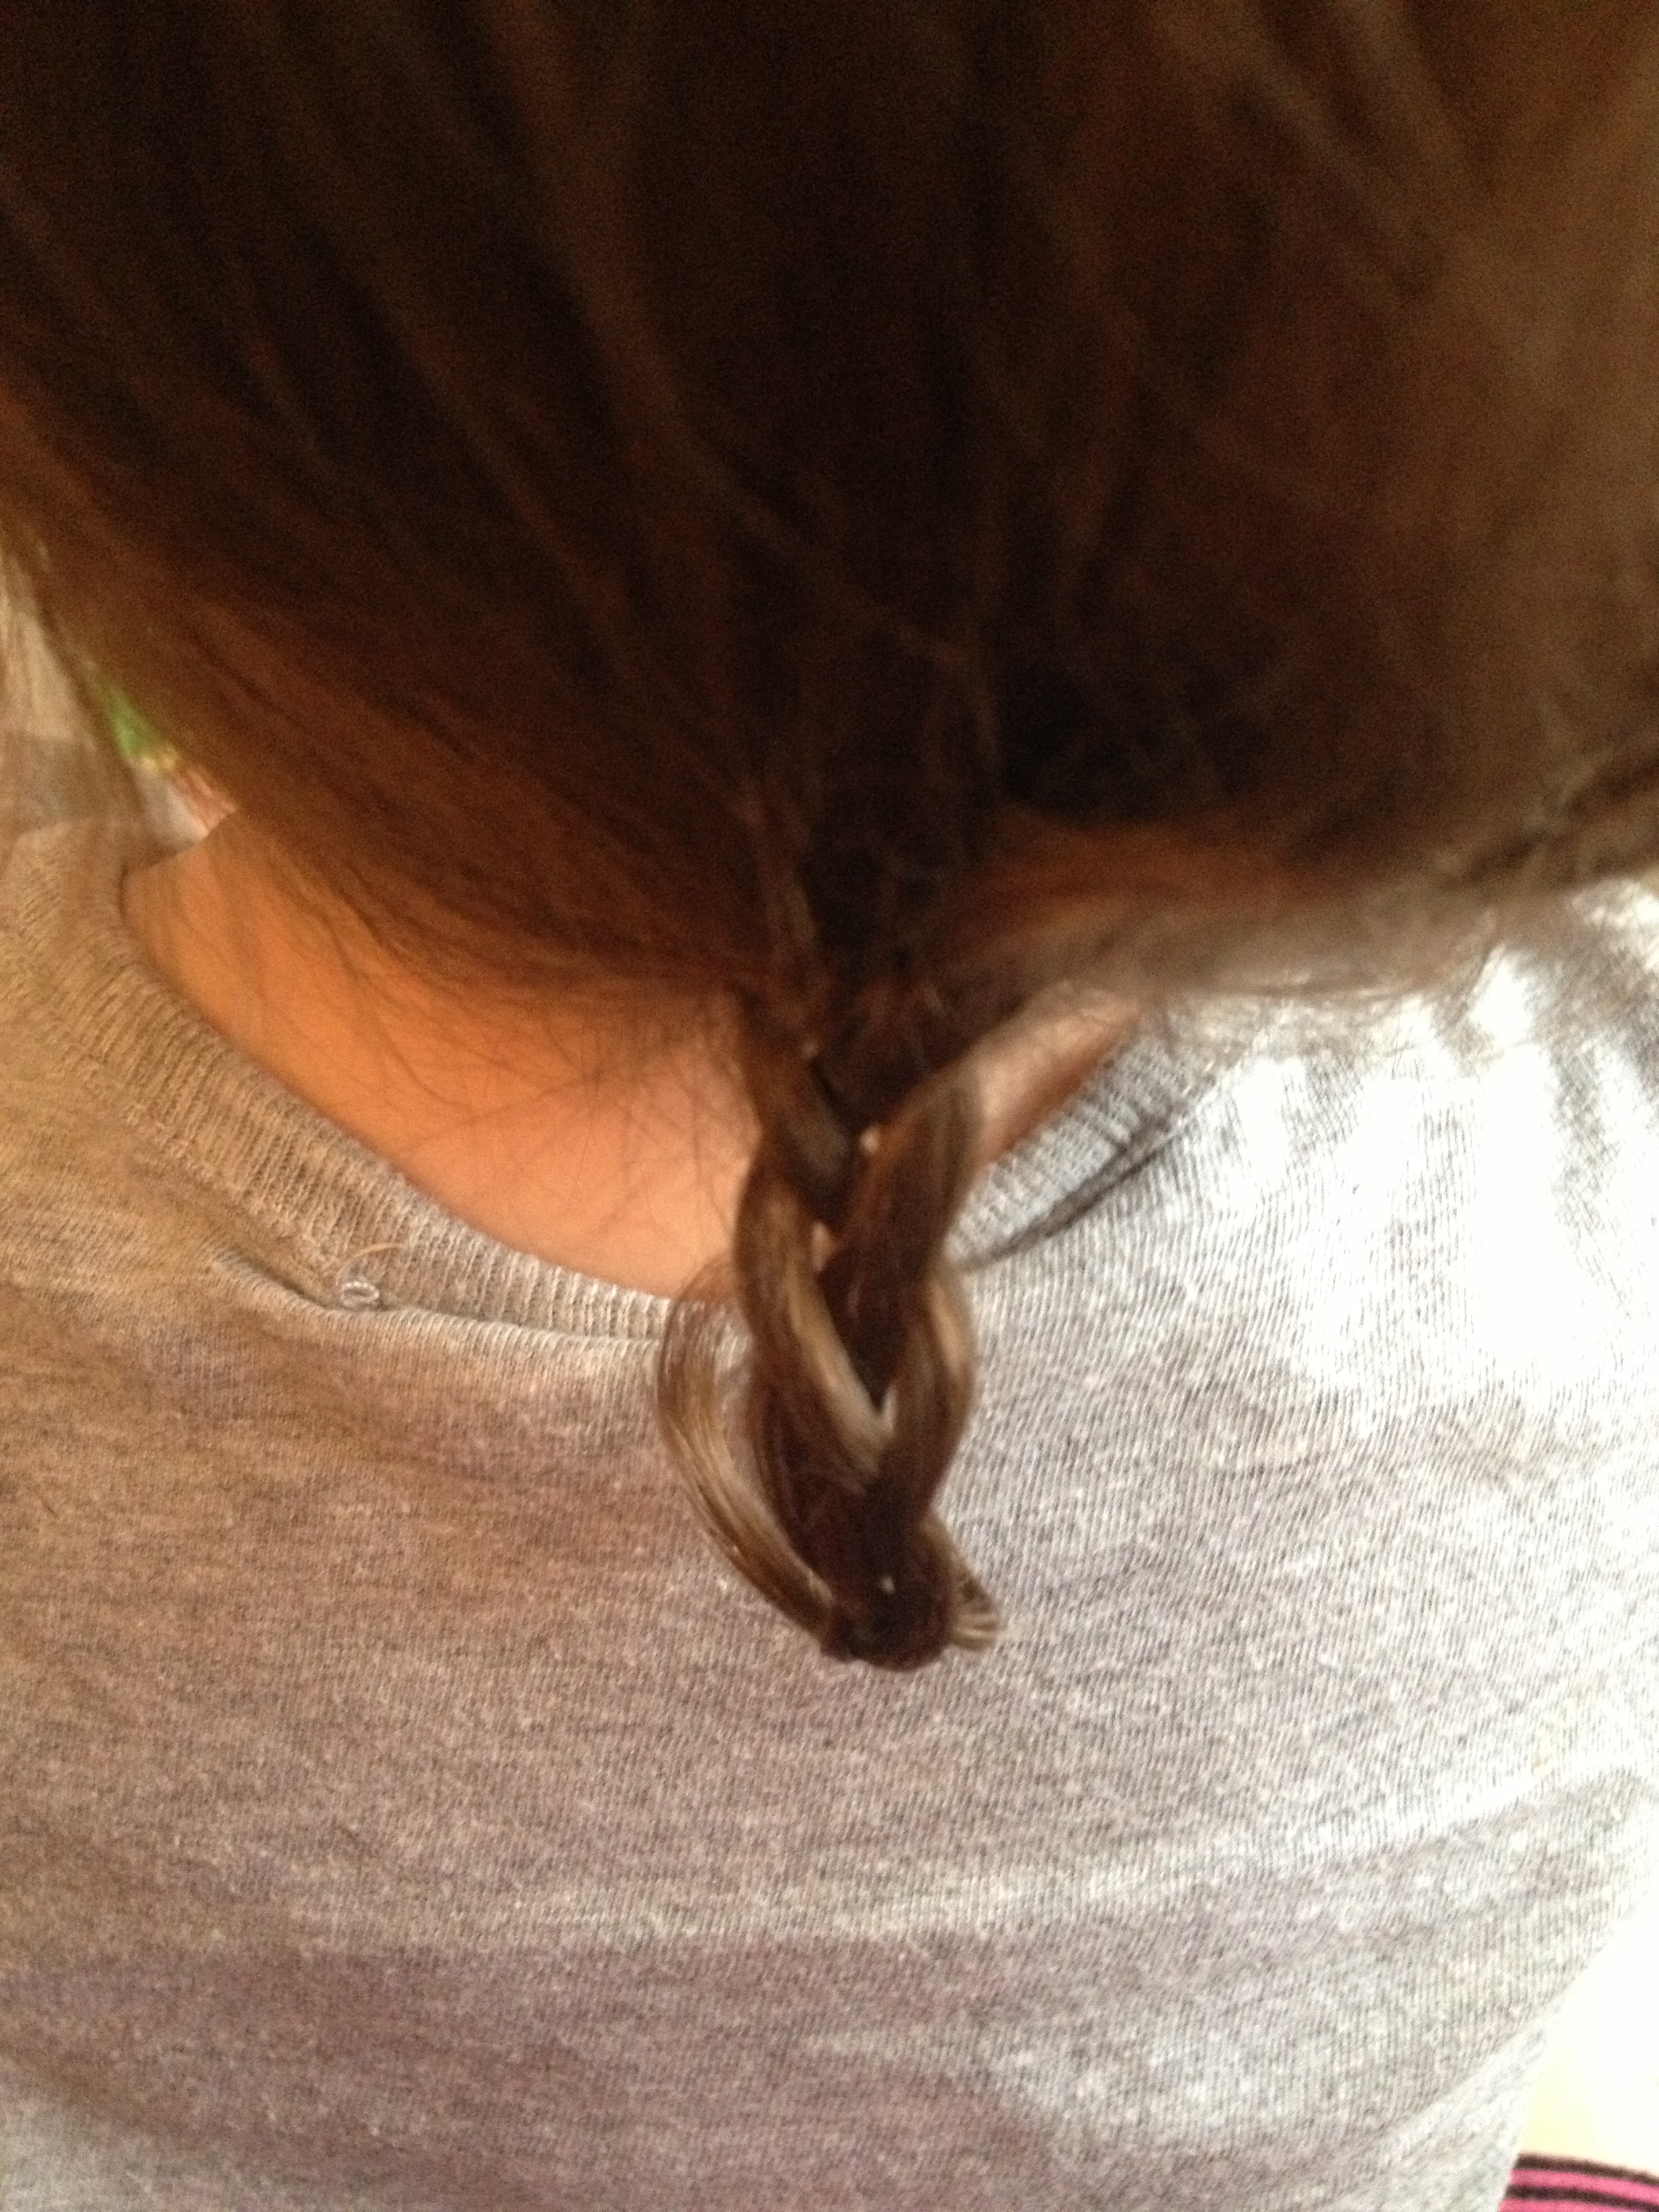 OMG A BRAID! .... and a mullet... :-/